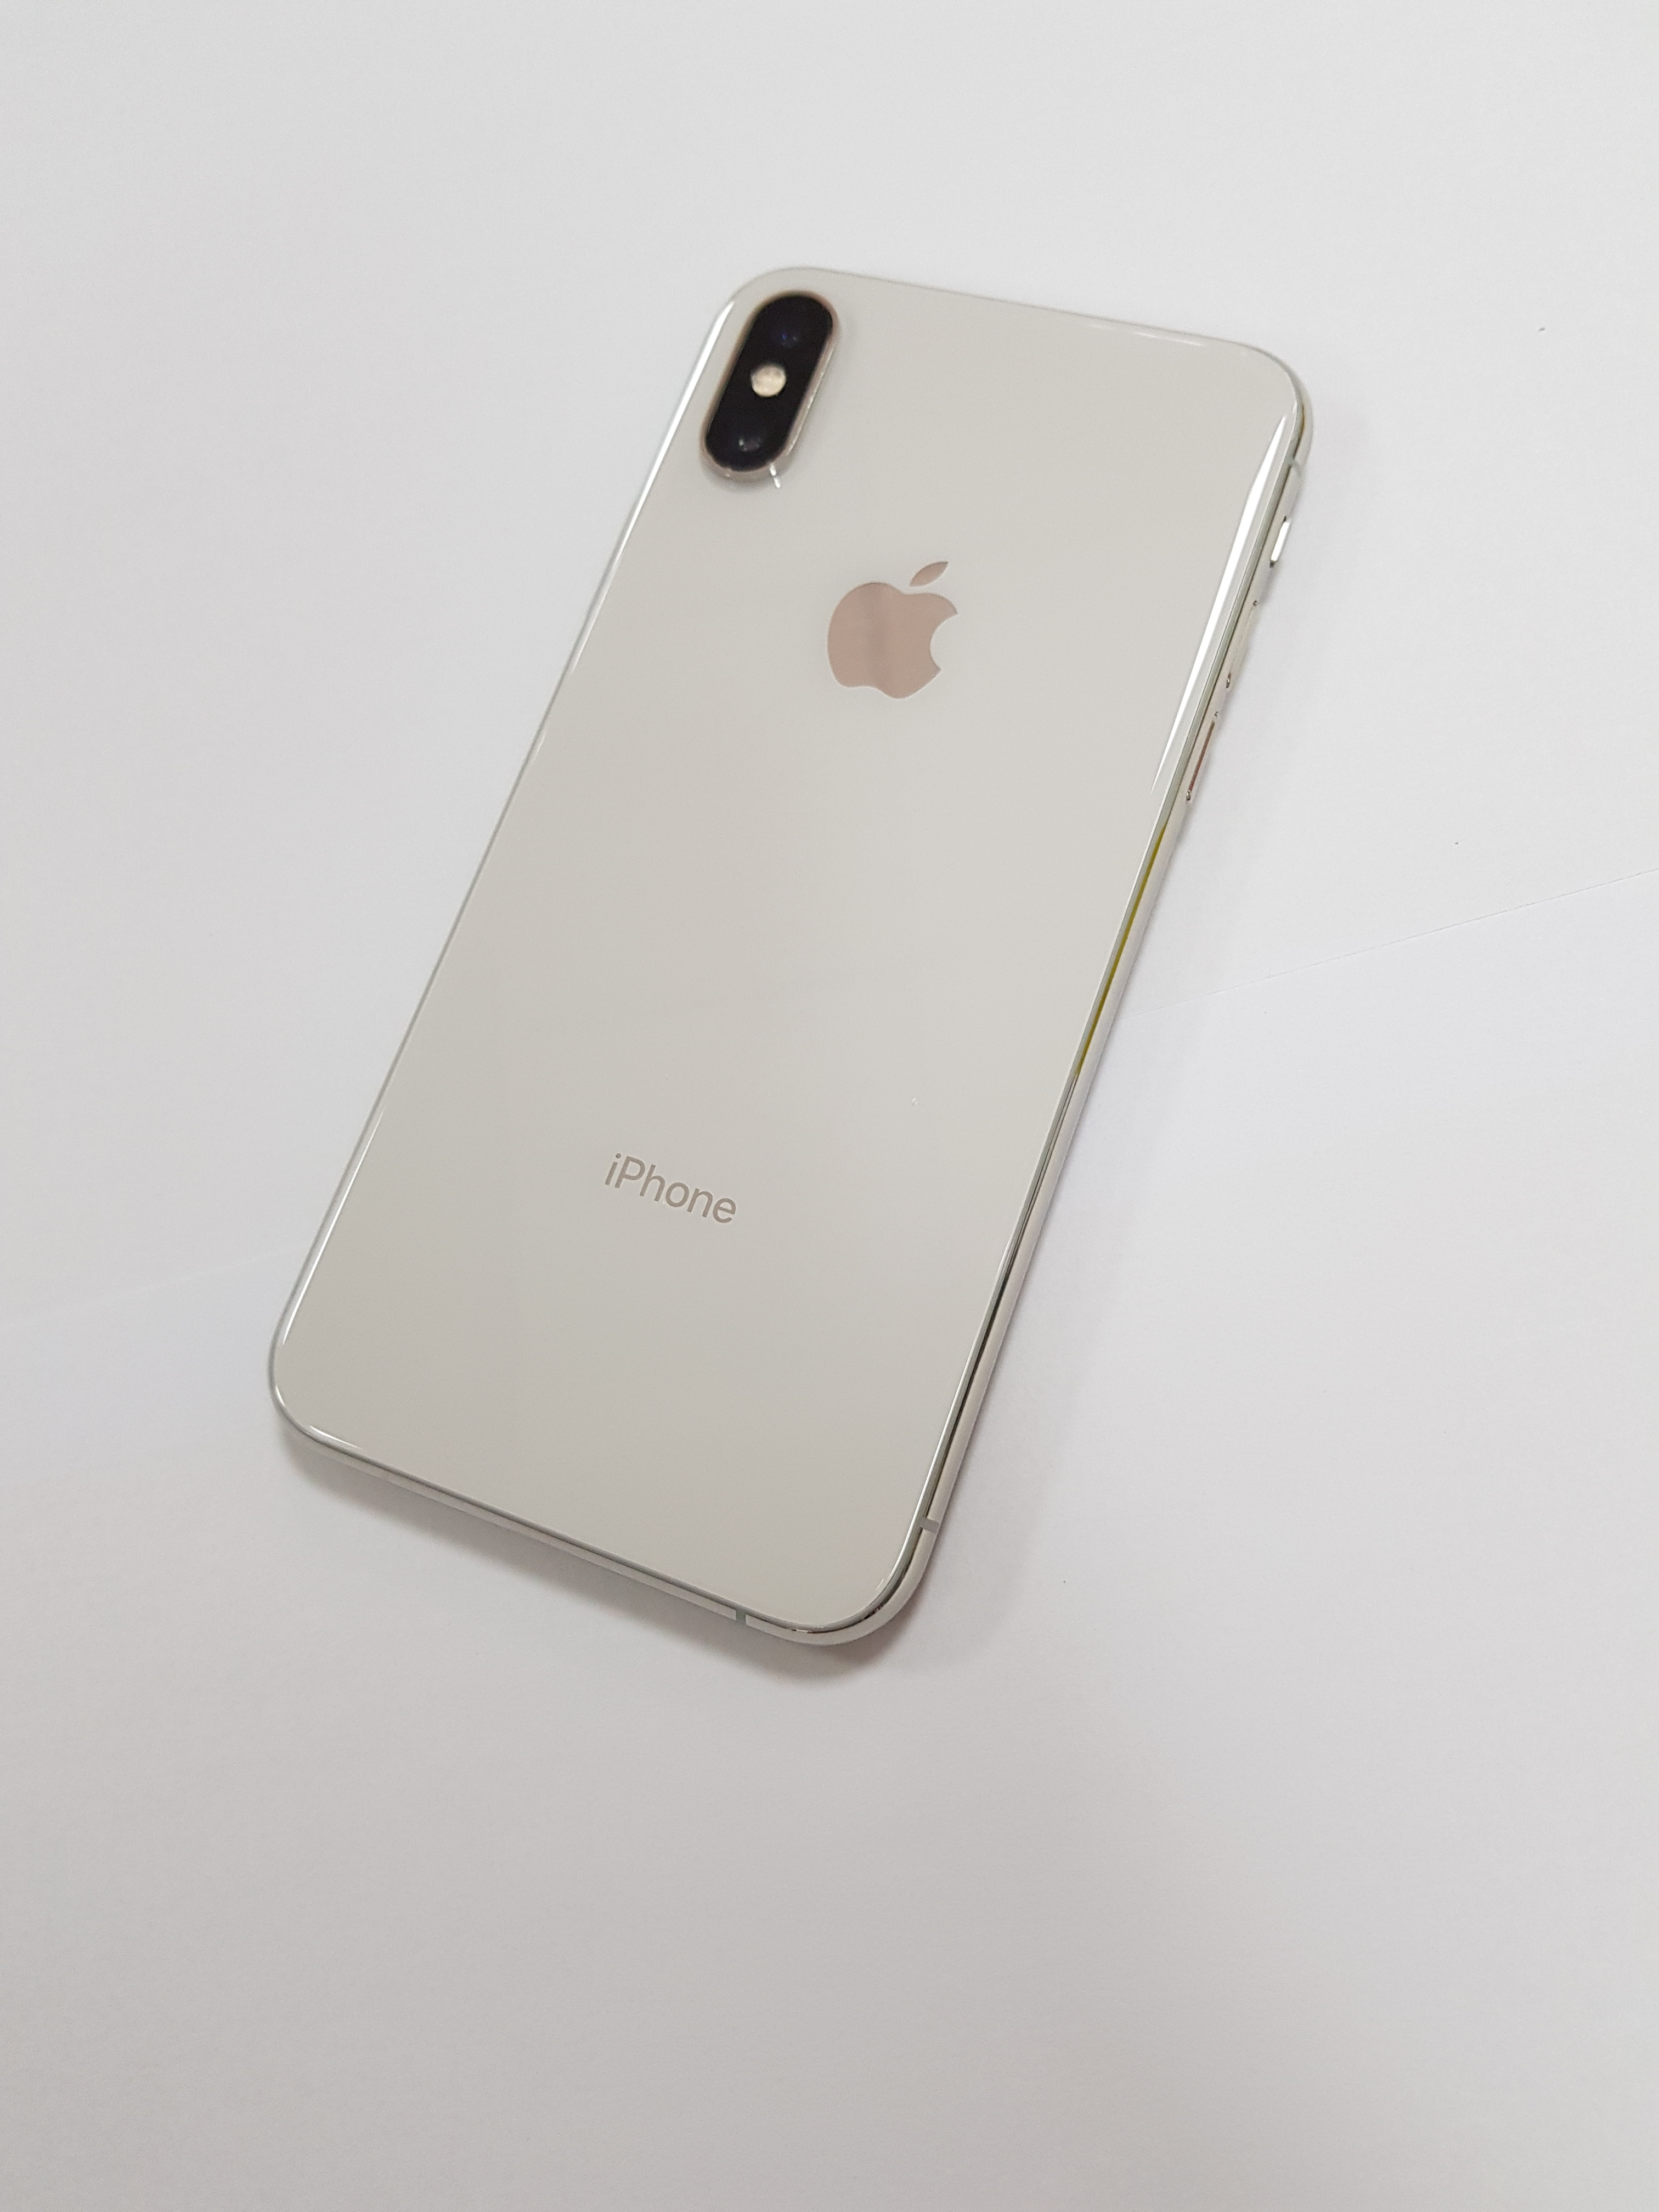 Apple Original iPhone X  Face ID iOS A11 Chip Hexa Core 64GB/256GB Rom 3GB Ram 5.8inches Display 12MP 4G LTE Mobile Phone enlarge